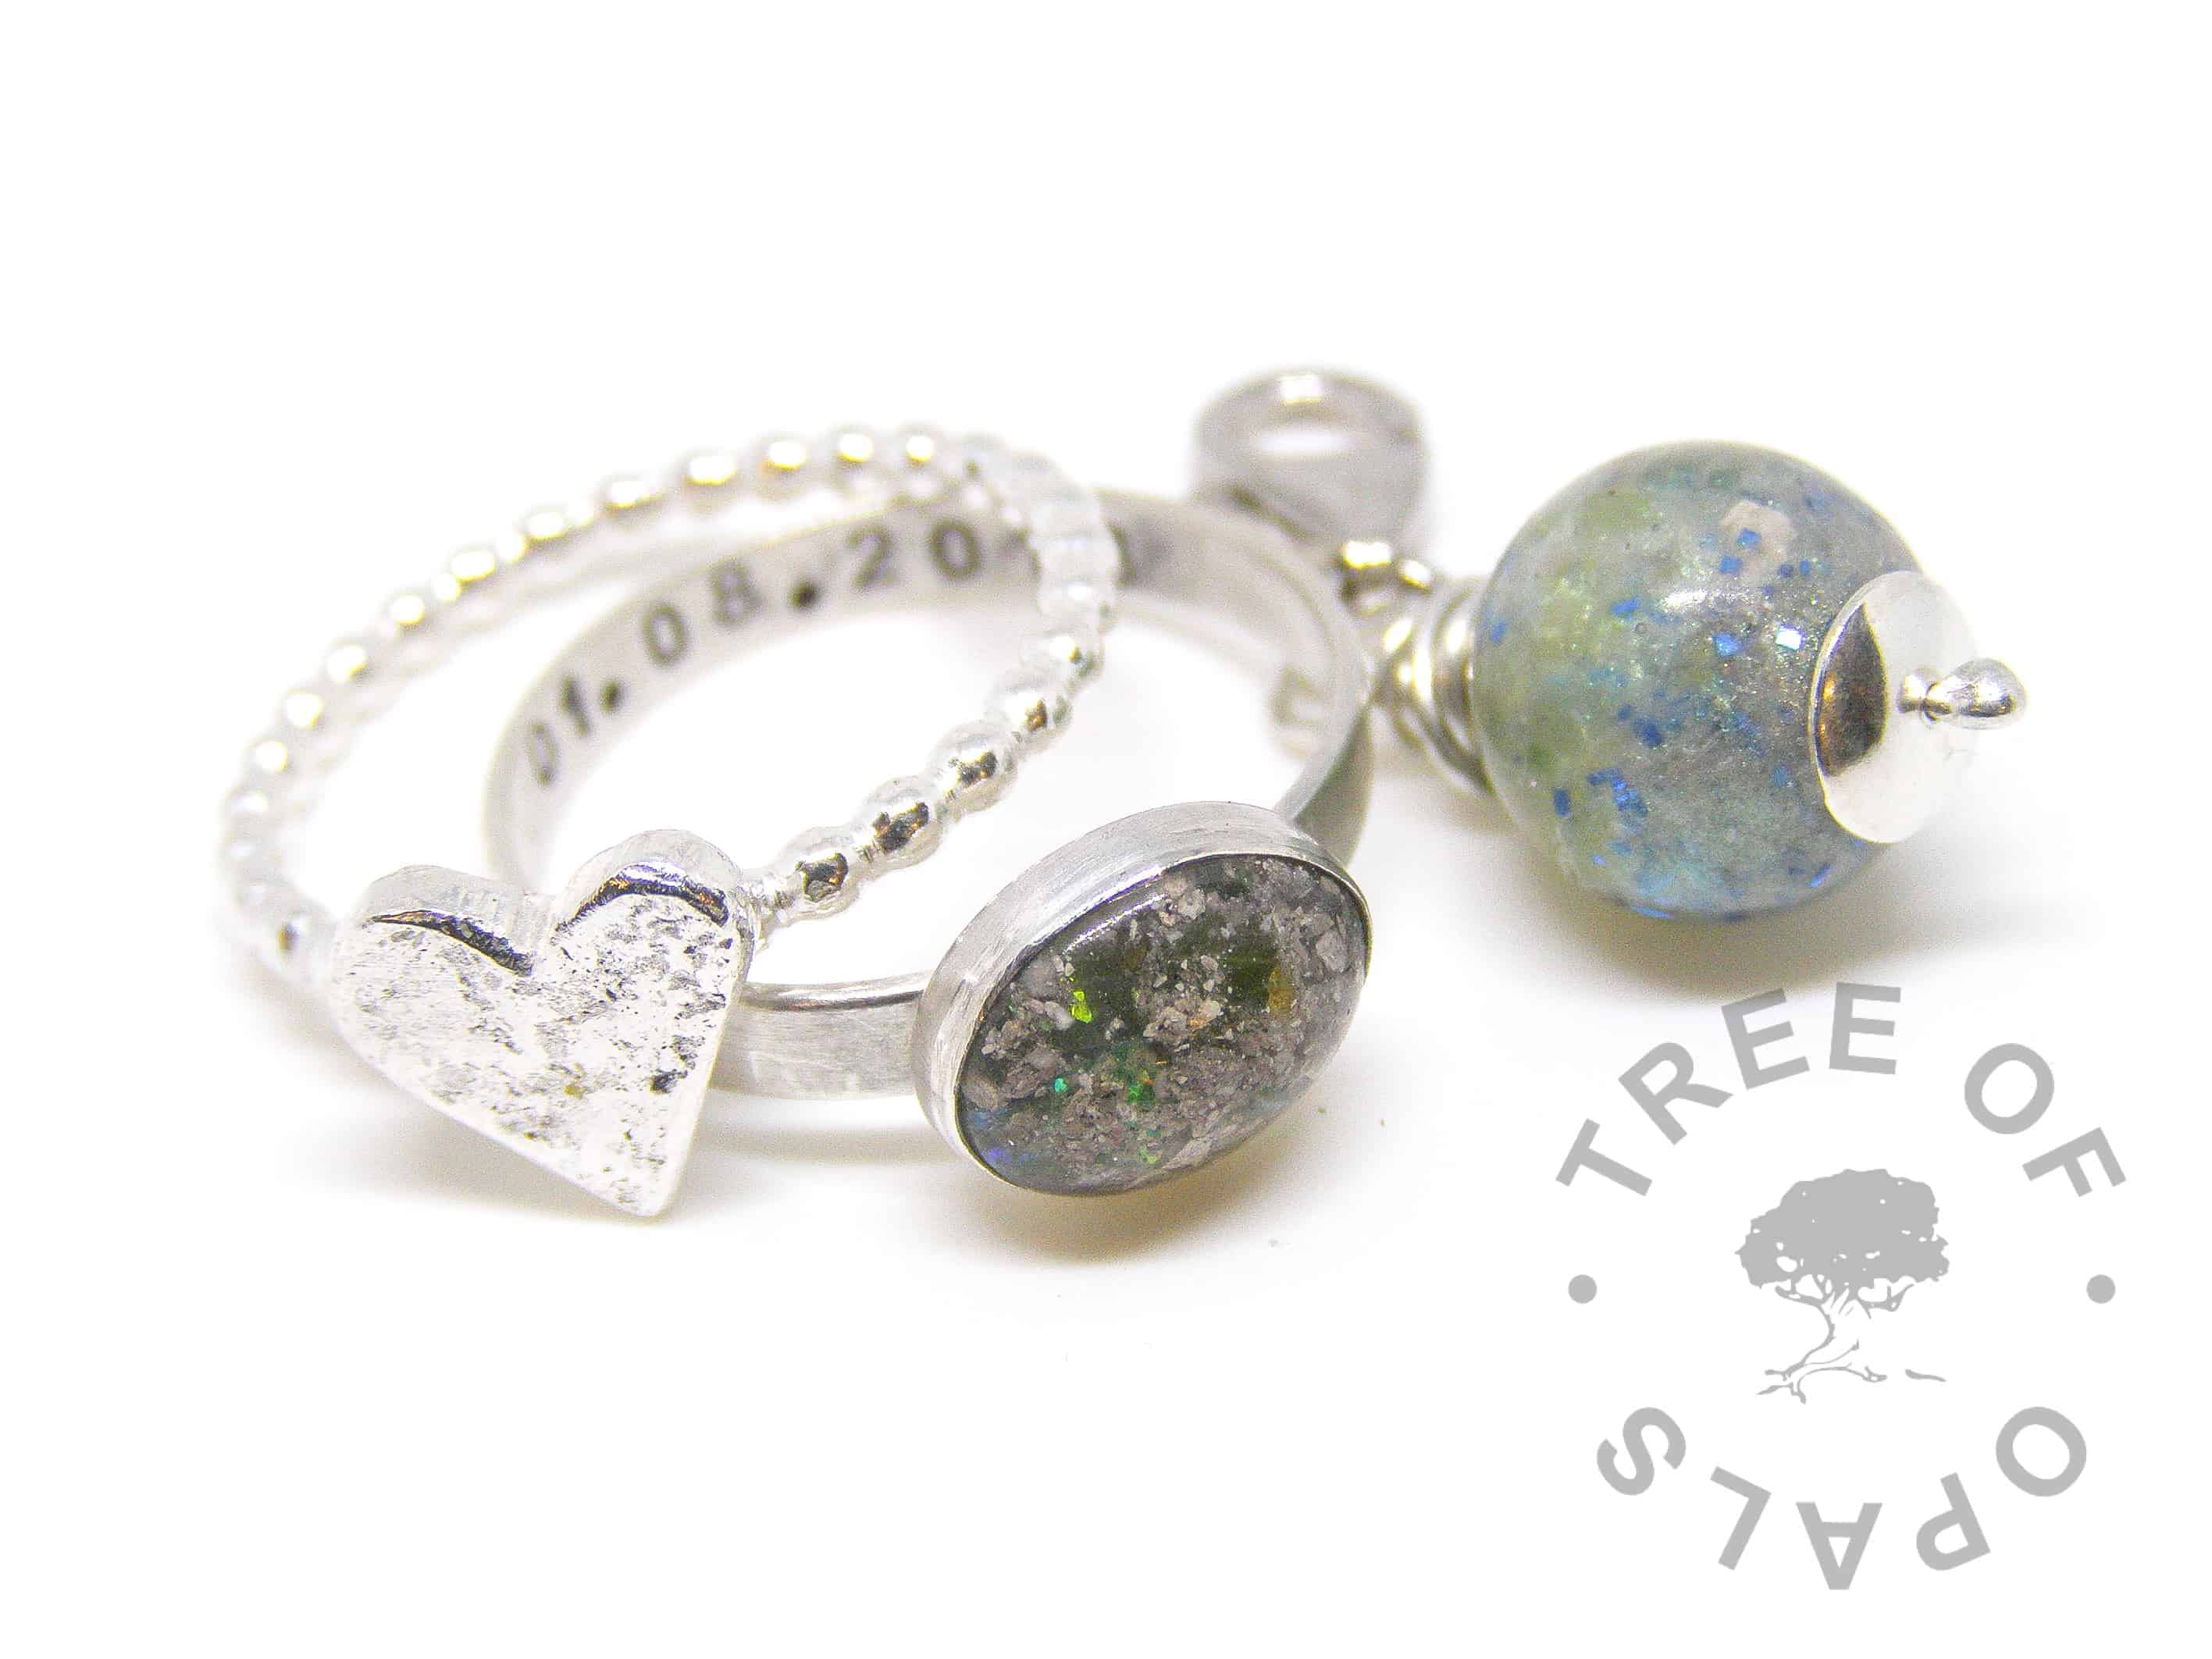 peridot cremation ash family order, lock of hair pearl and stacking ring with peridot August birthstone and cobalt blue glitter. Pro Bono free of charge baby loss ring and mystery piece pearl plus heart accent bubble wire stacking ring